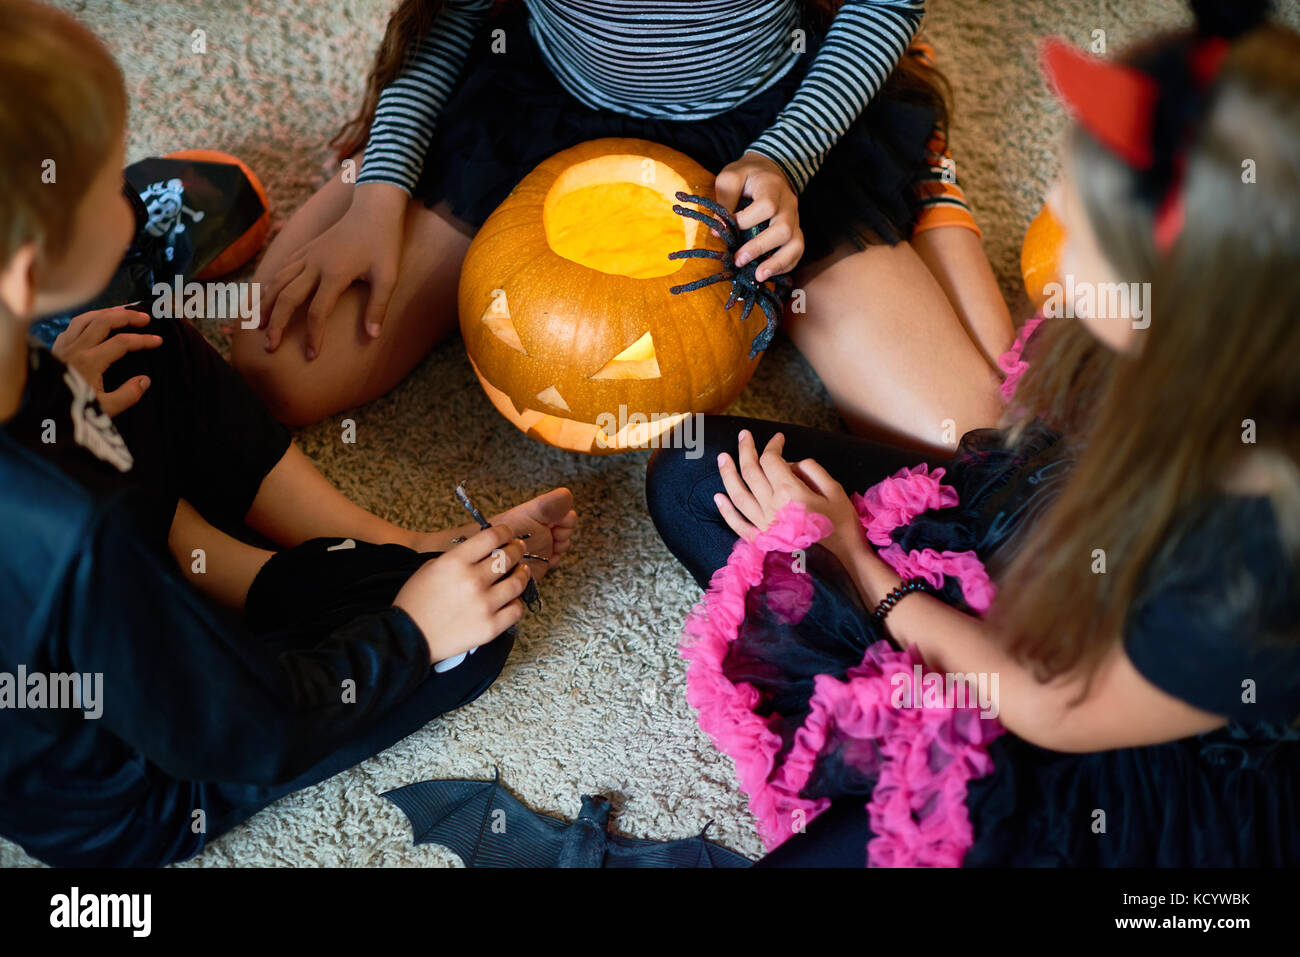 Above view of three children wearing Halloween costumes playing magic ritual with pumpkin lantern sitting on floor - Stock Image